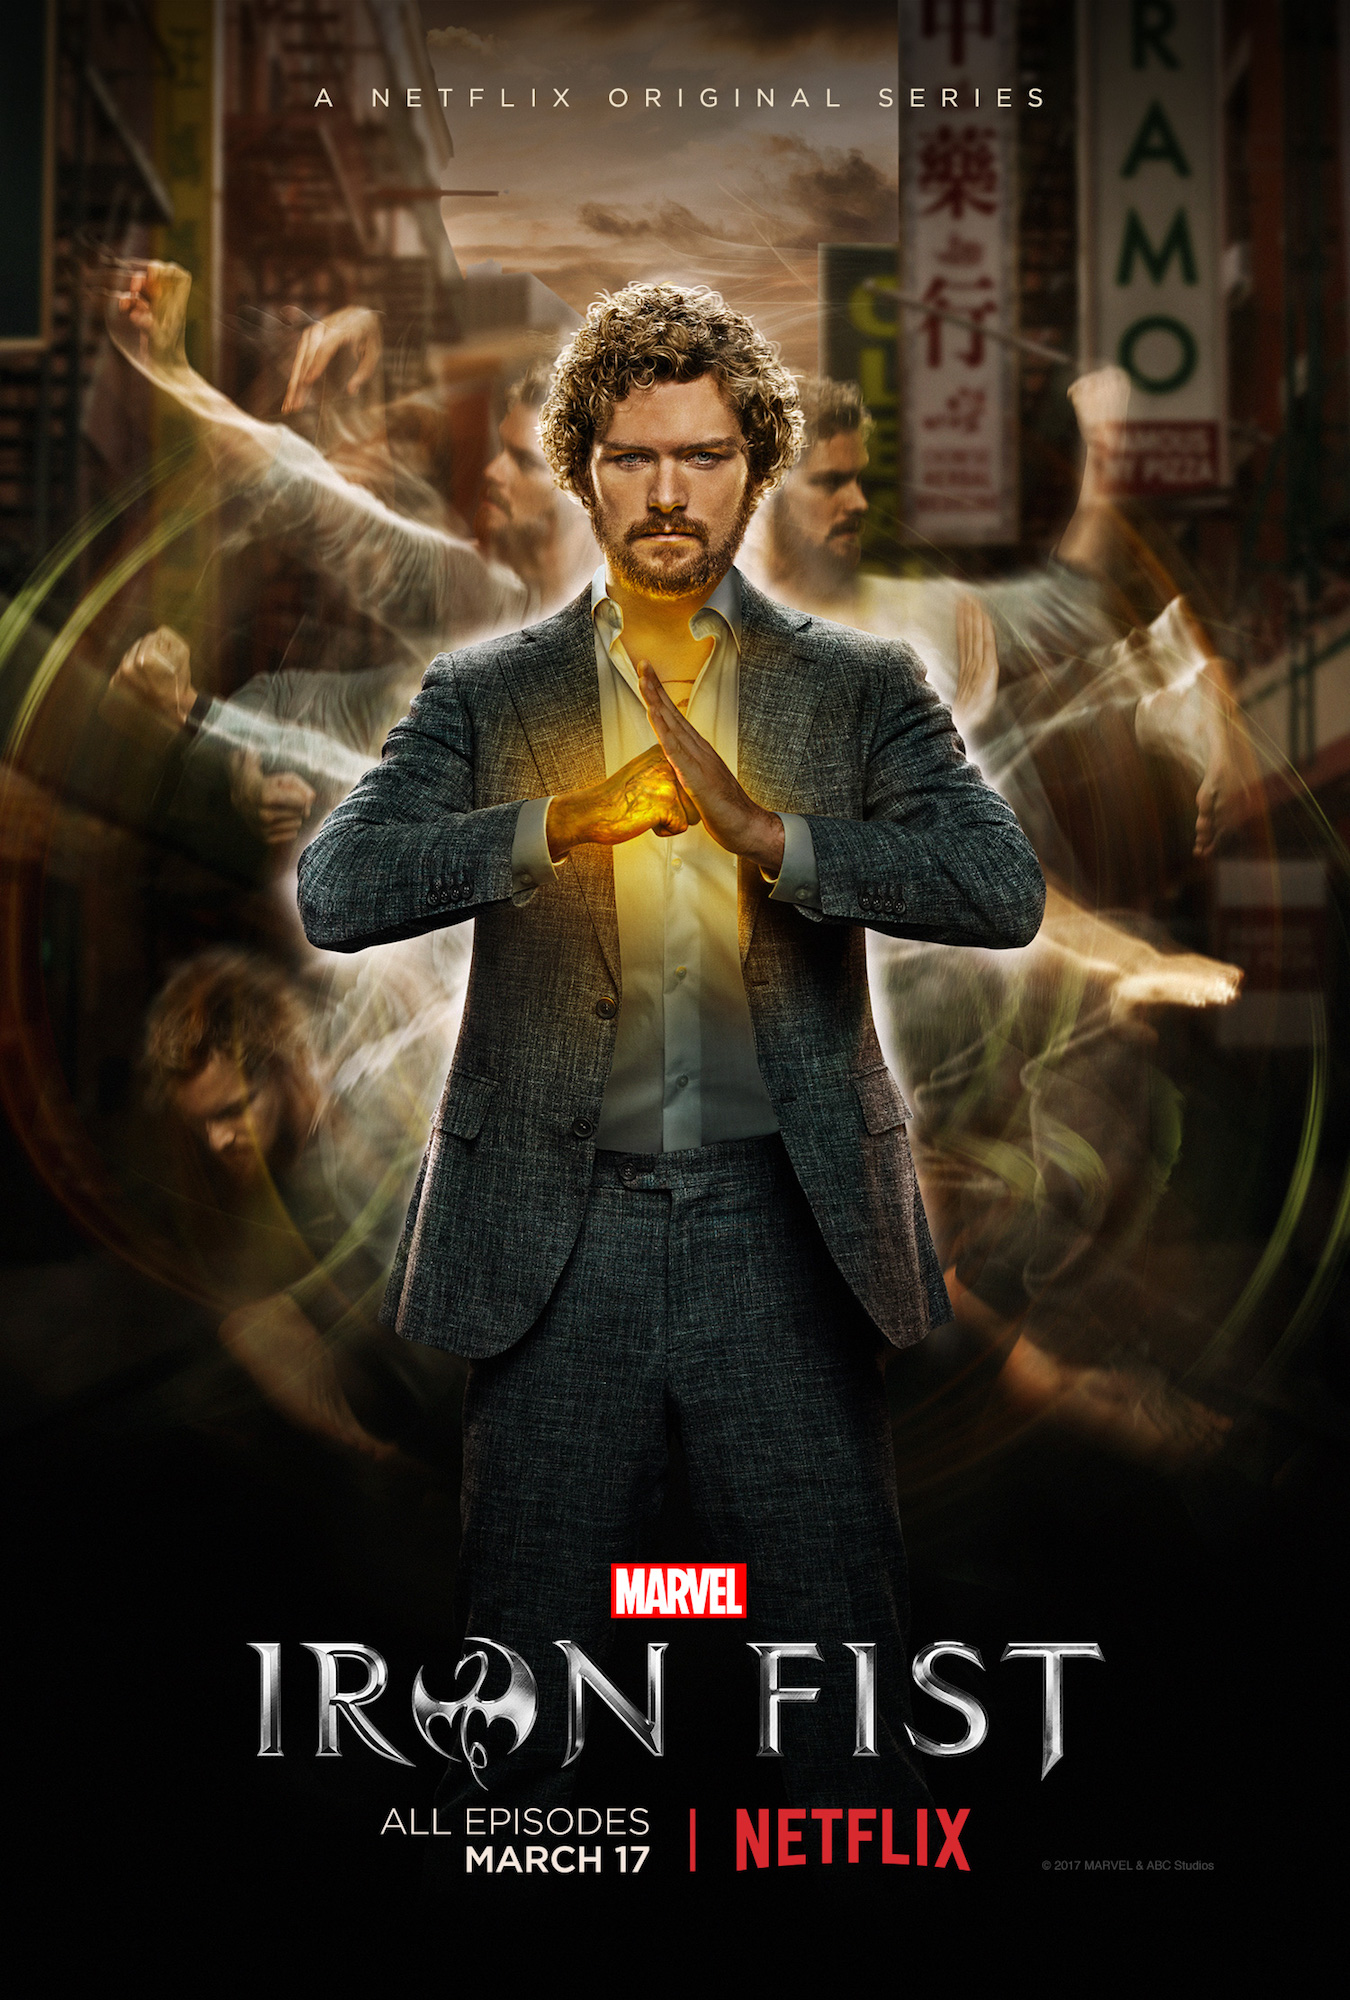 iron fist poster Every Marvel Movie and TV Show Ranked From Worst to Best